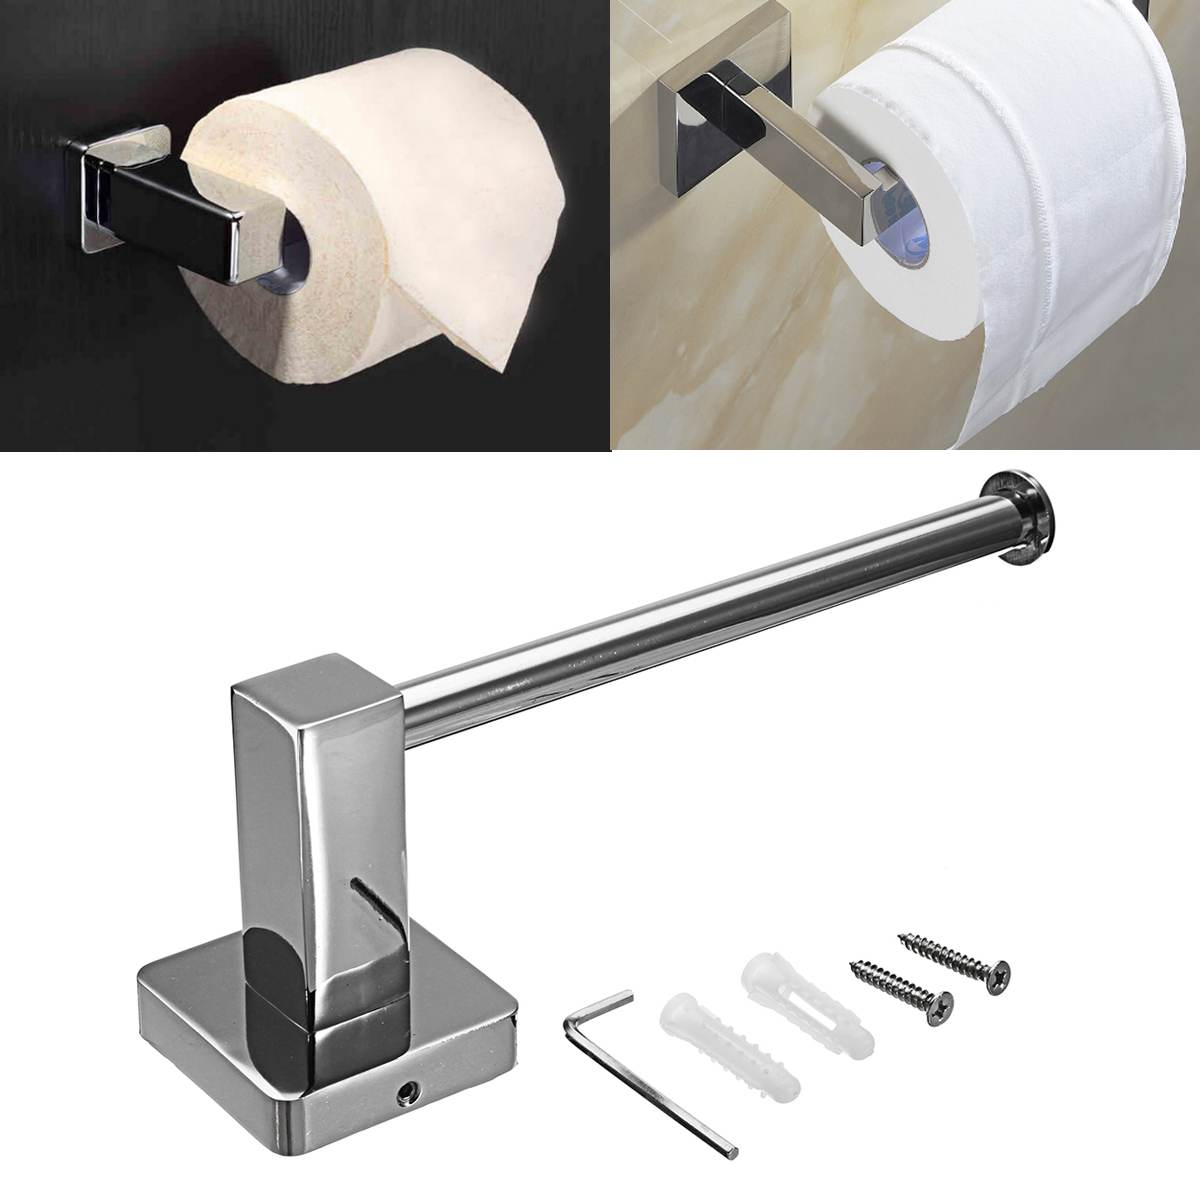 Toilet Kitchen Roll Paper Holder Wall Mounted Towel Rack Bathroom Kitchen A